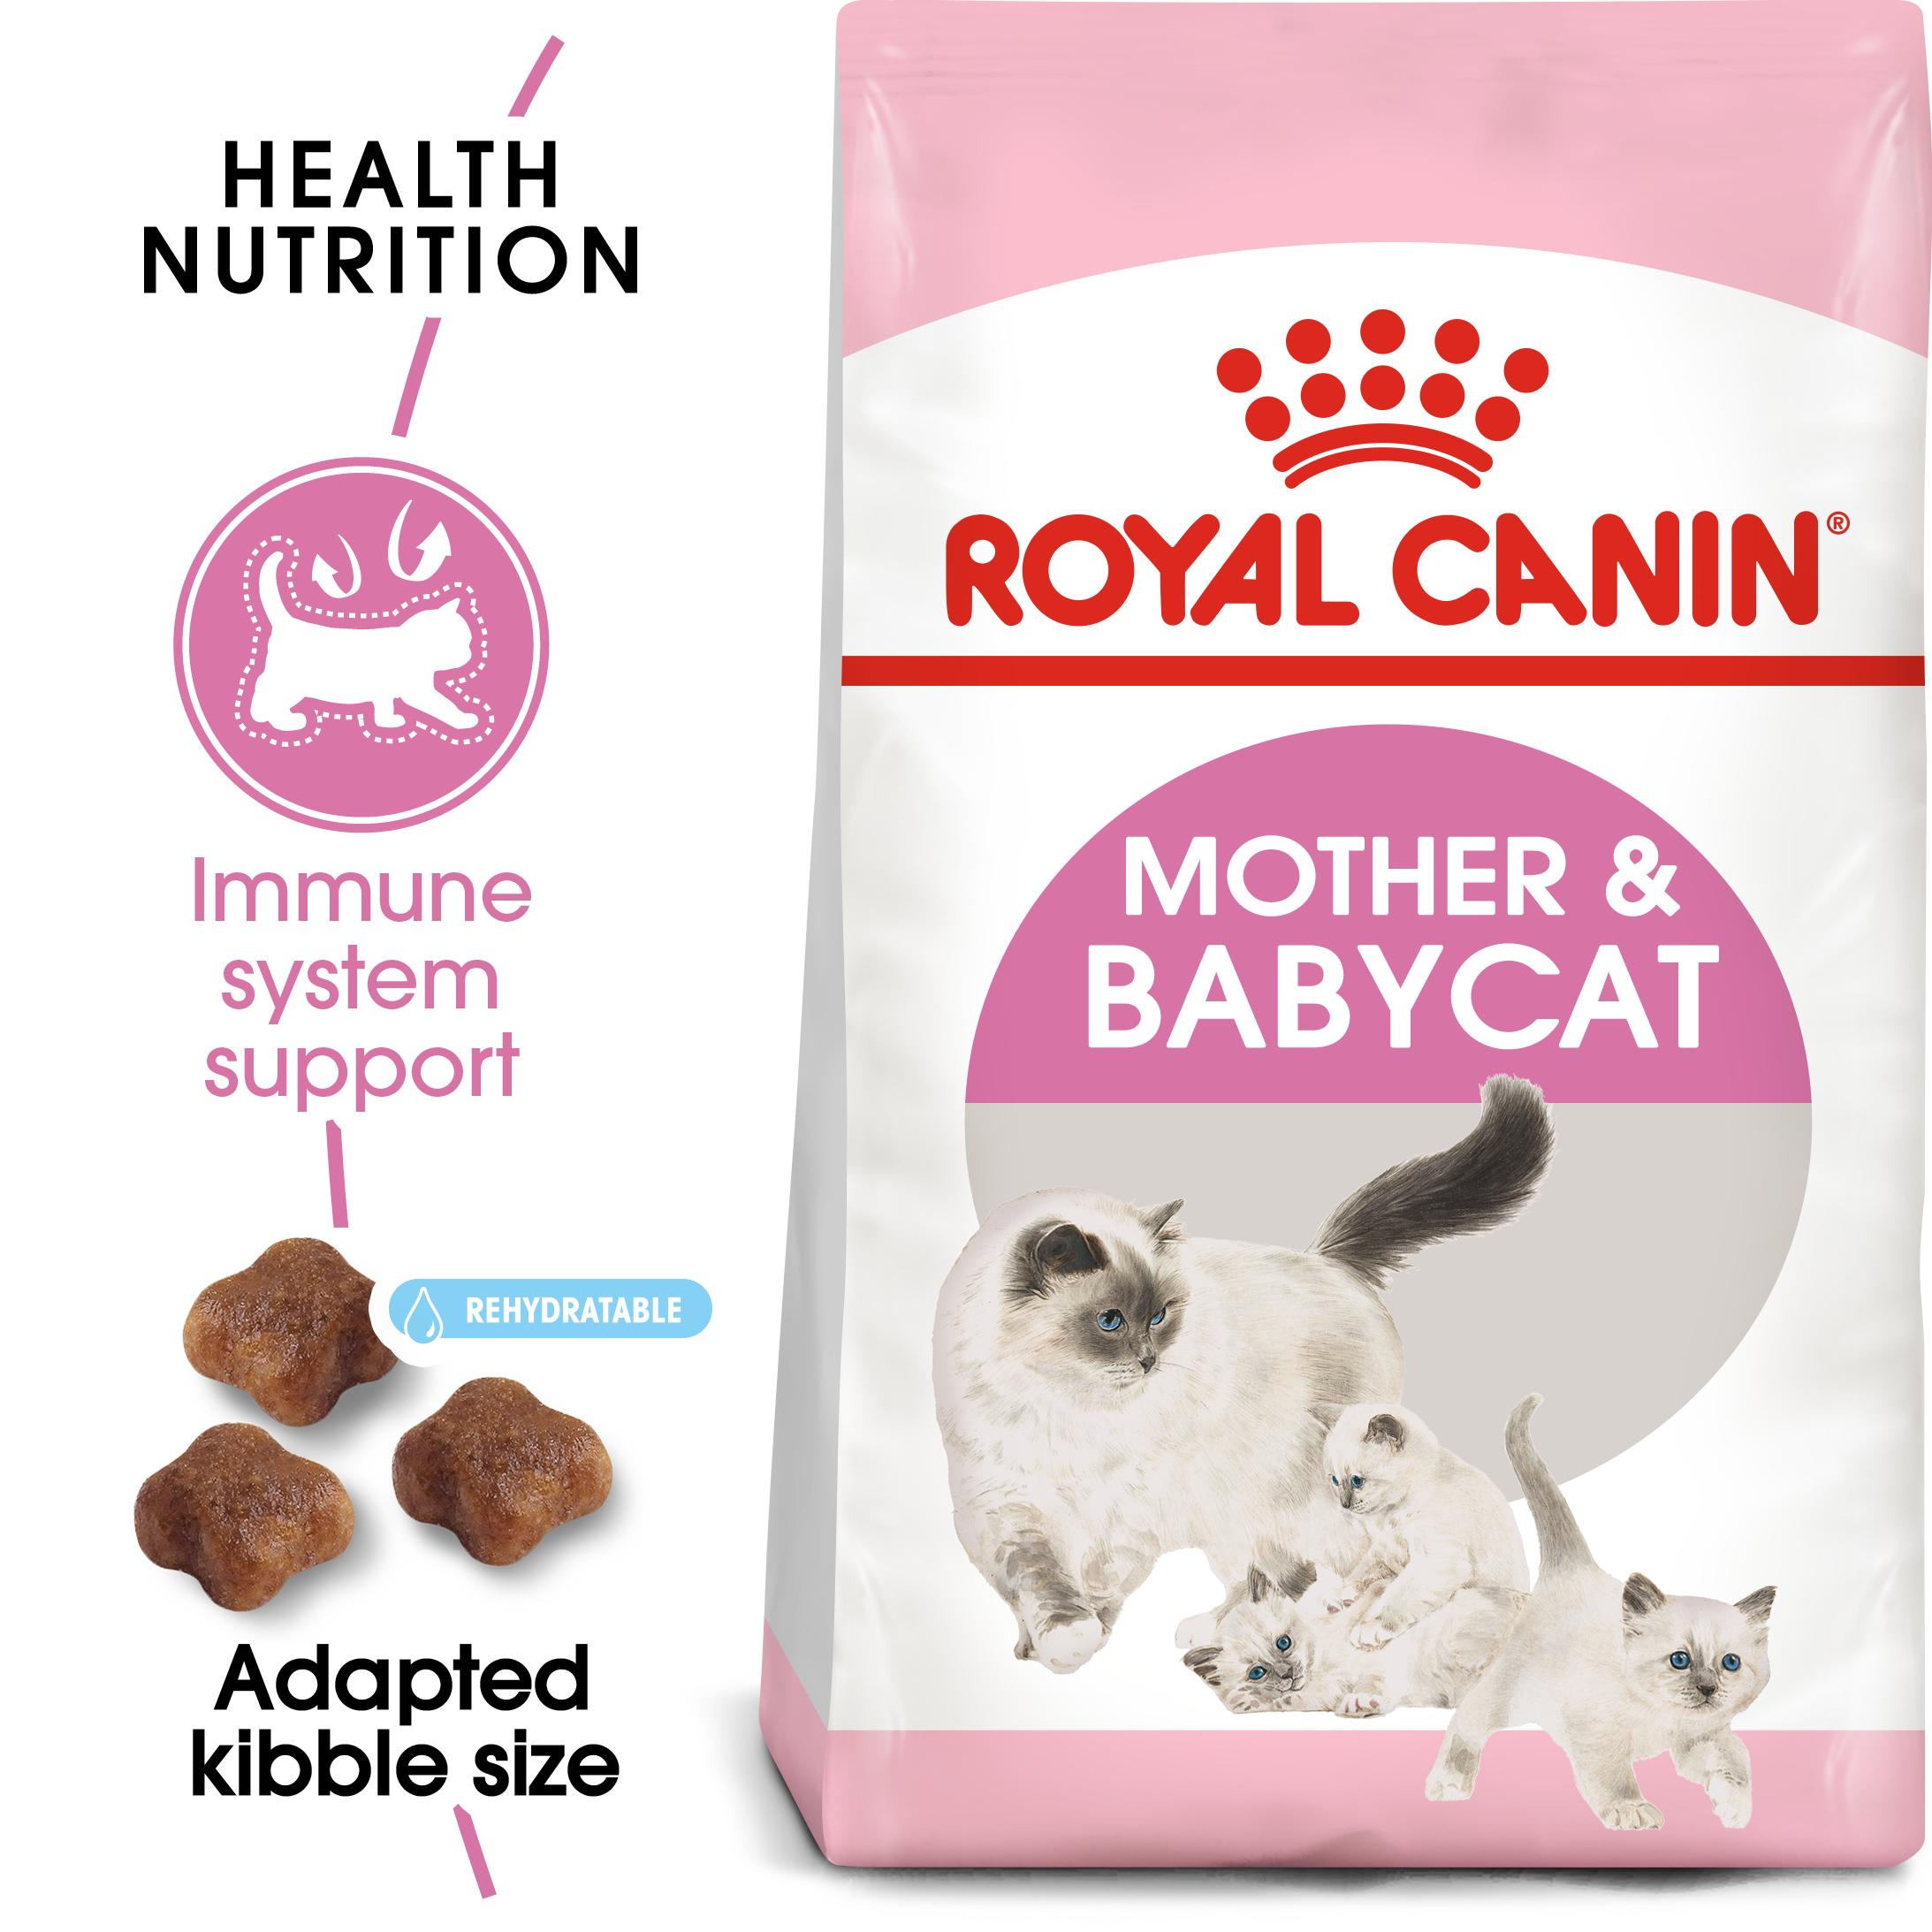 ROYAL CANIN® Mother & Babycat 400g